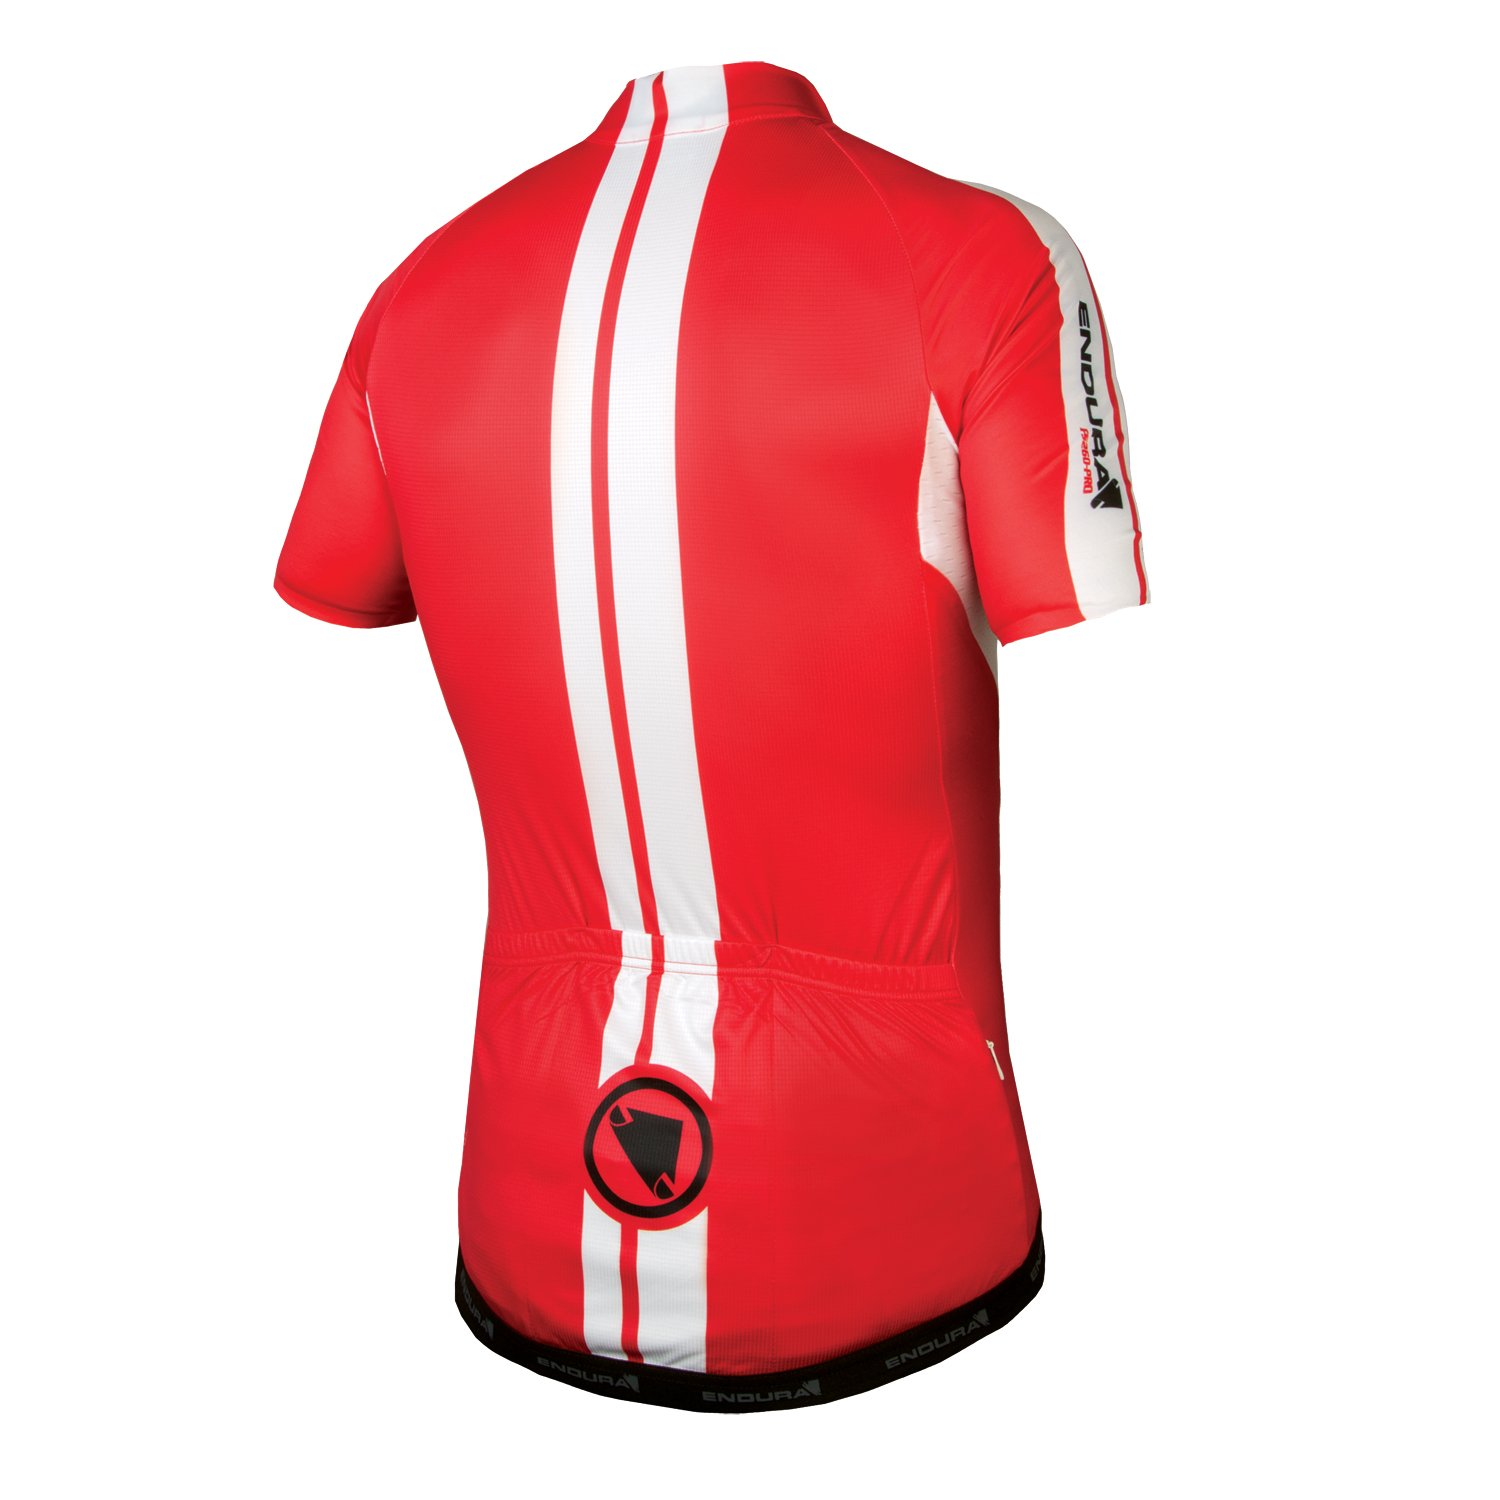 303fa4d9c Amazon.com   Endura FS260-Pro Printed Mens Short Sleeve Cycling Jersey    Clothing